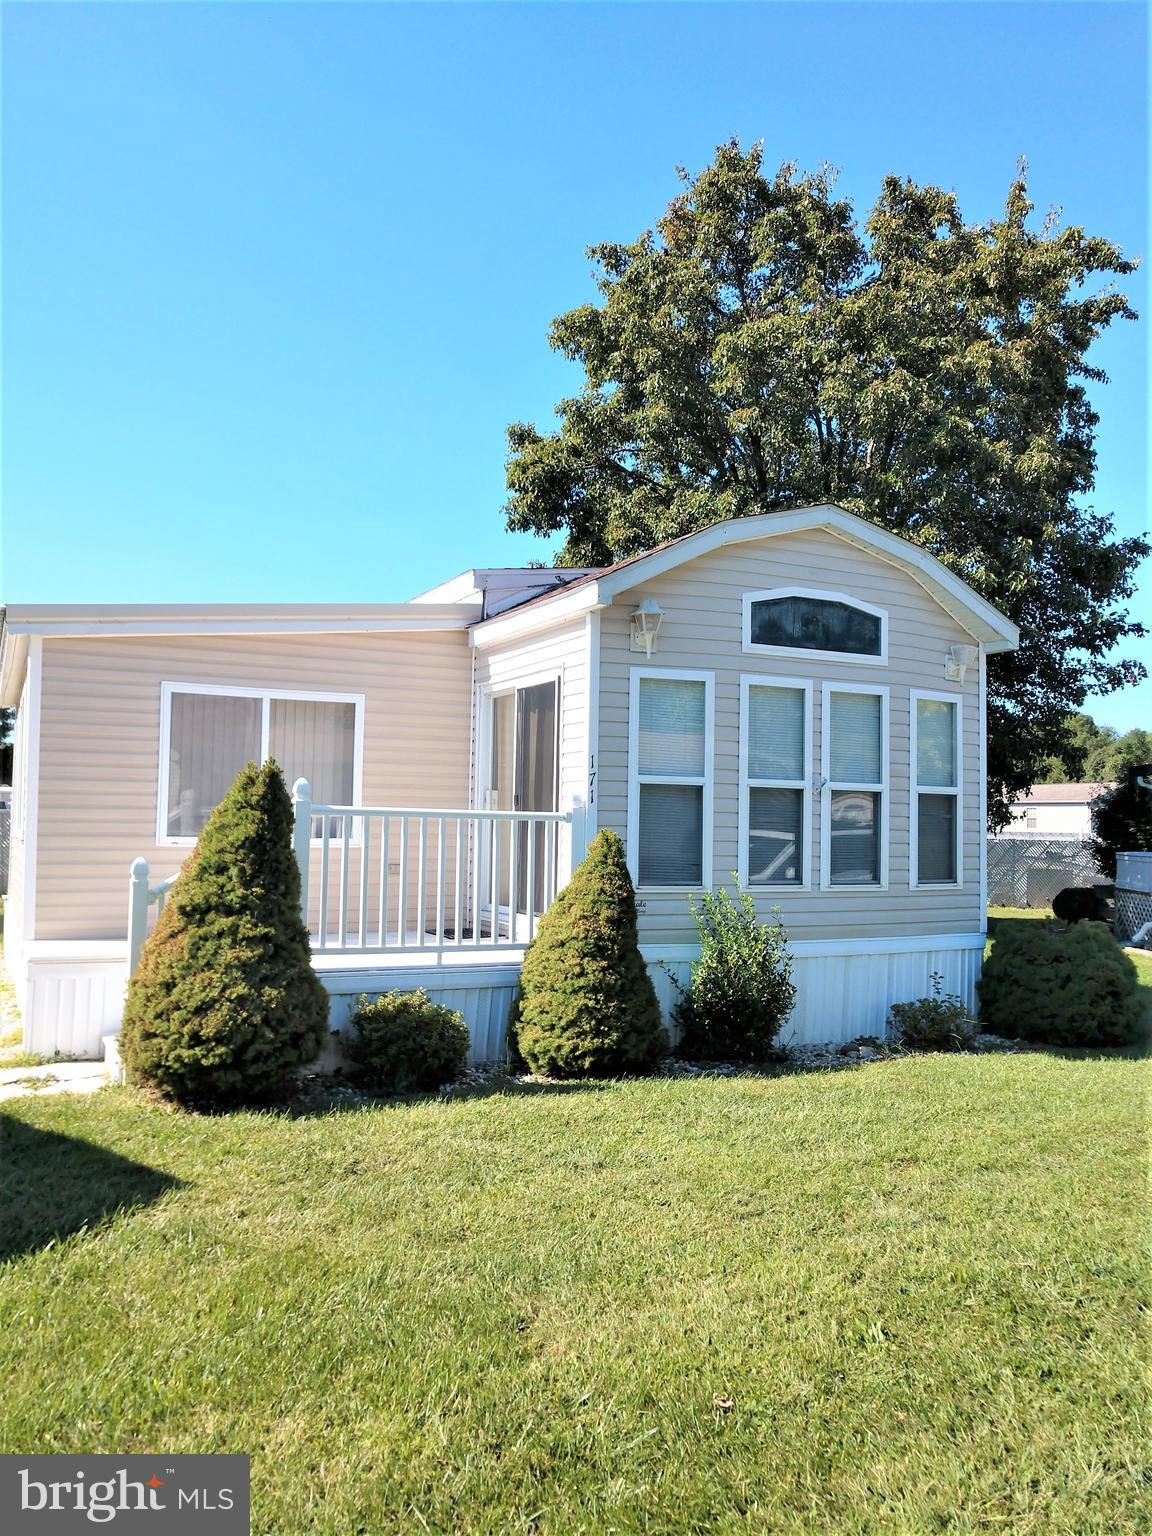 White Horse Park available for vacation use.  Not a year round community, but great for summertime visits or off season visits.  pool, boat dock, canoes, boats, kayaks are all welcome.  Gated community.  Come enjoy the best of living at the Beach close to Ocean City.